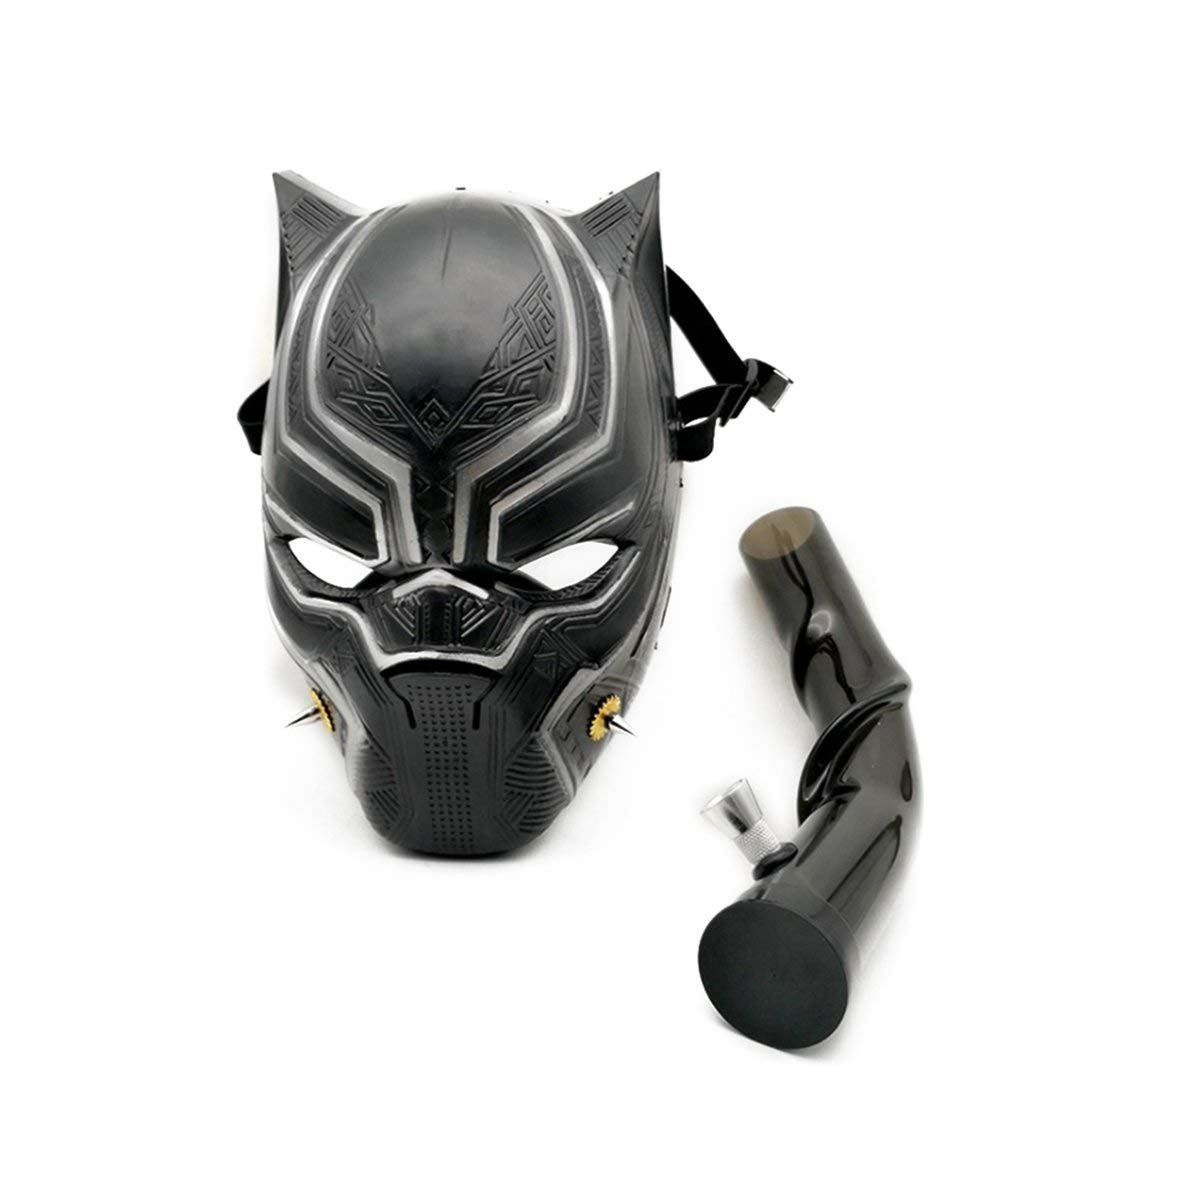 Heaviesk Lightweight Portable Size Black Leopard Shape Manpower Gas Mask Bong Smoking Water Pipes with Flexible Pipe